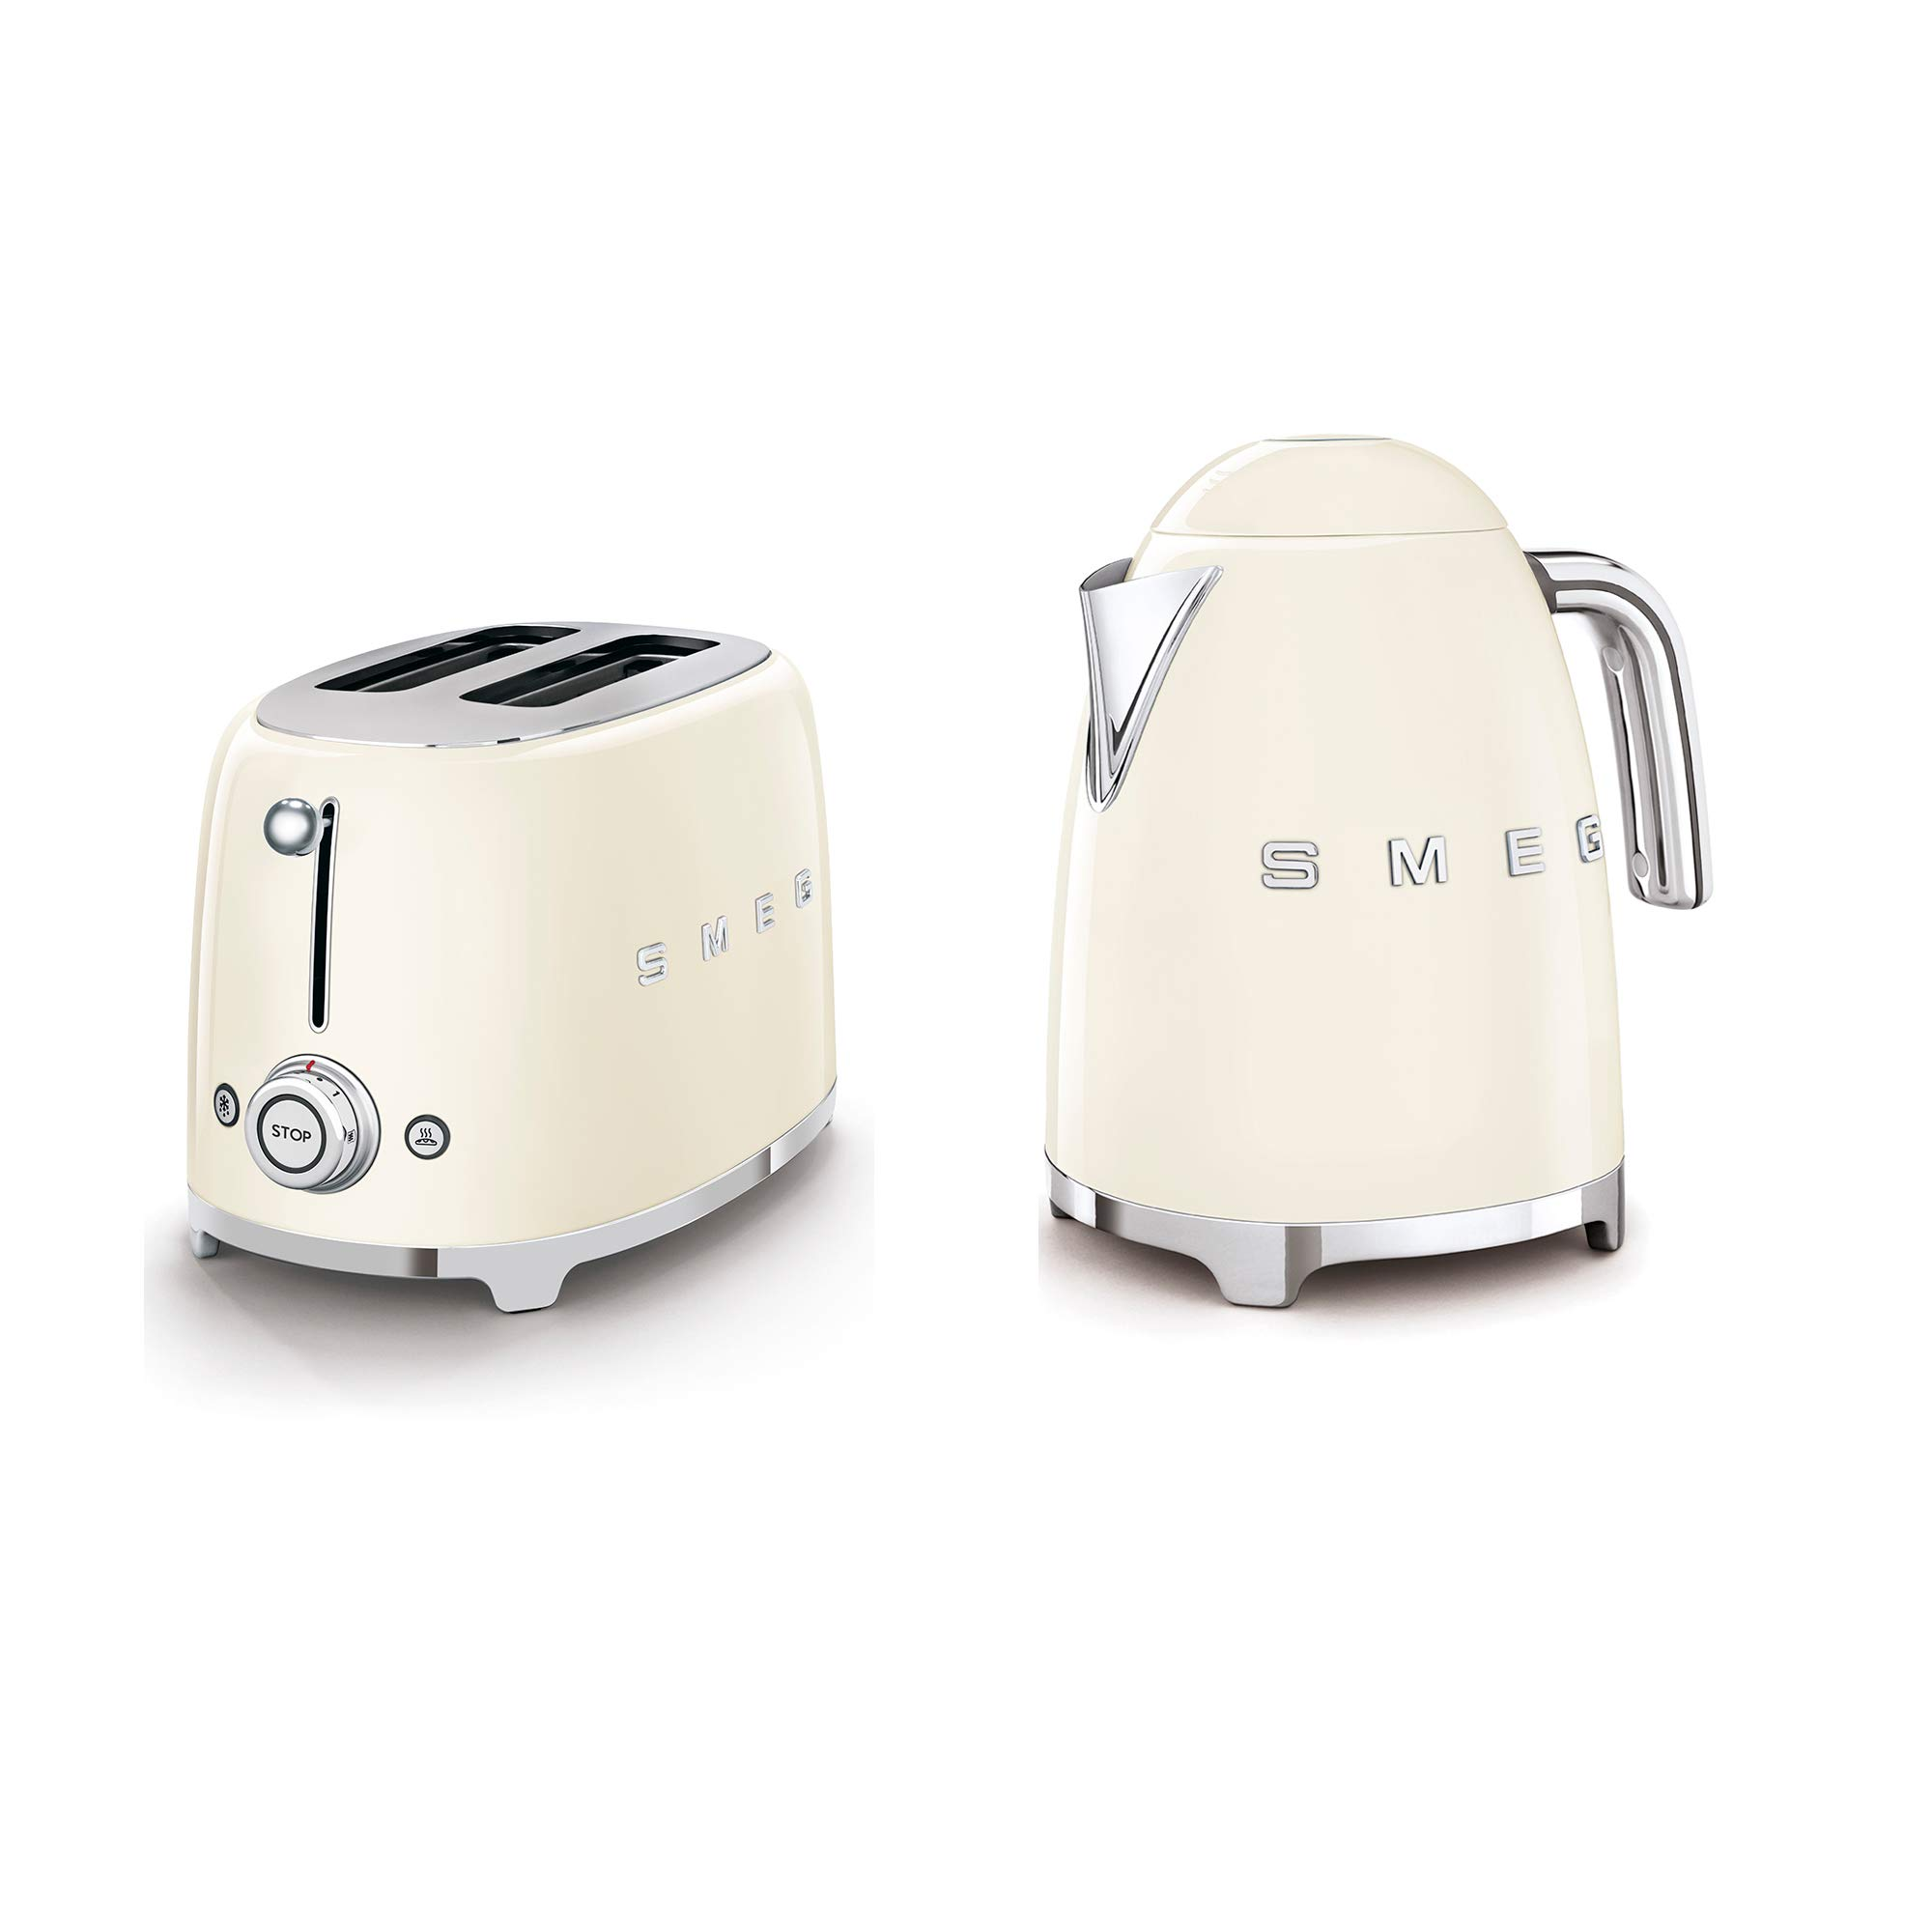 SMEG 2-Slice Toaster & 1.7-Liter Kettle in Cream